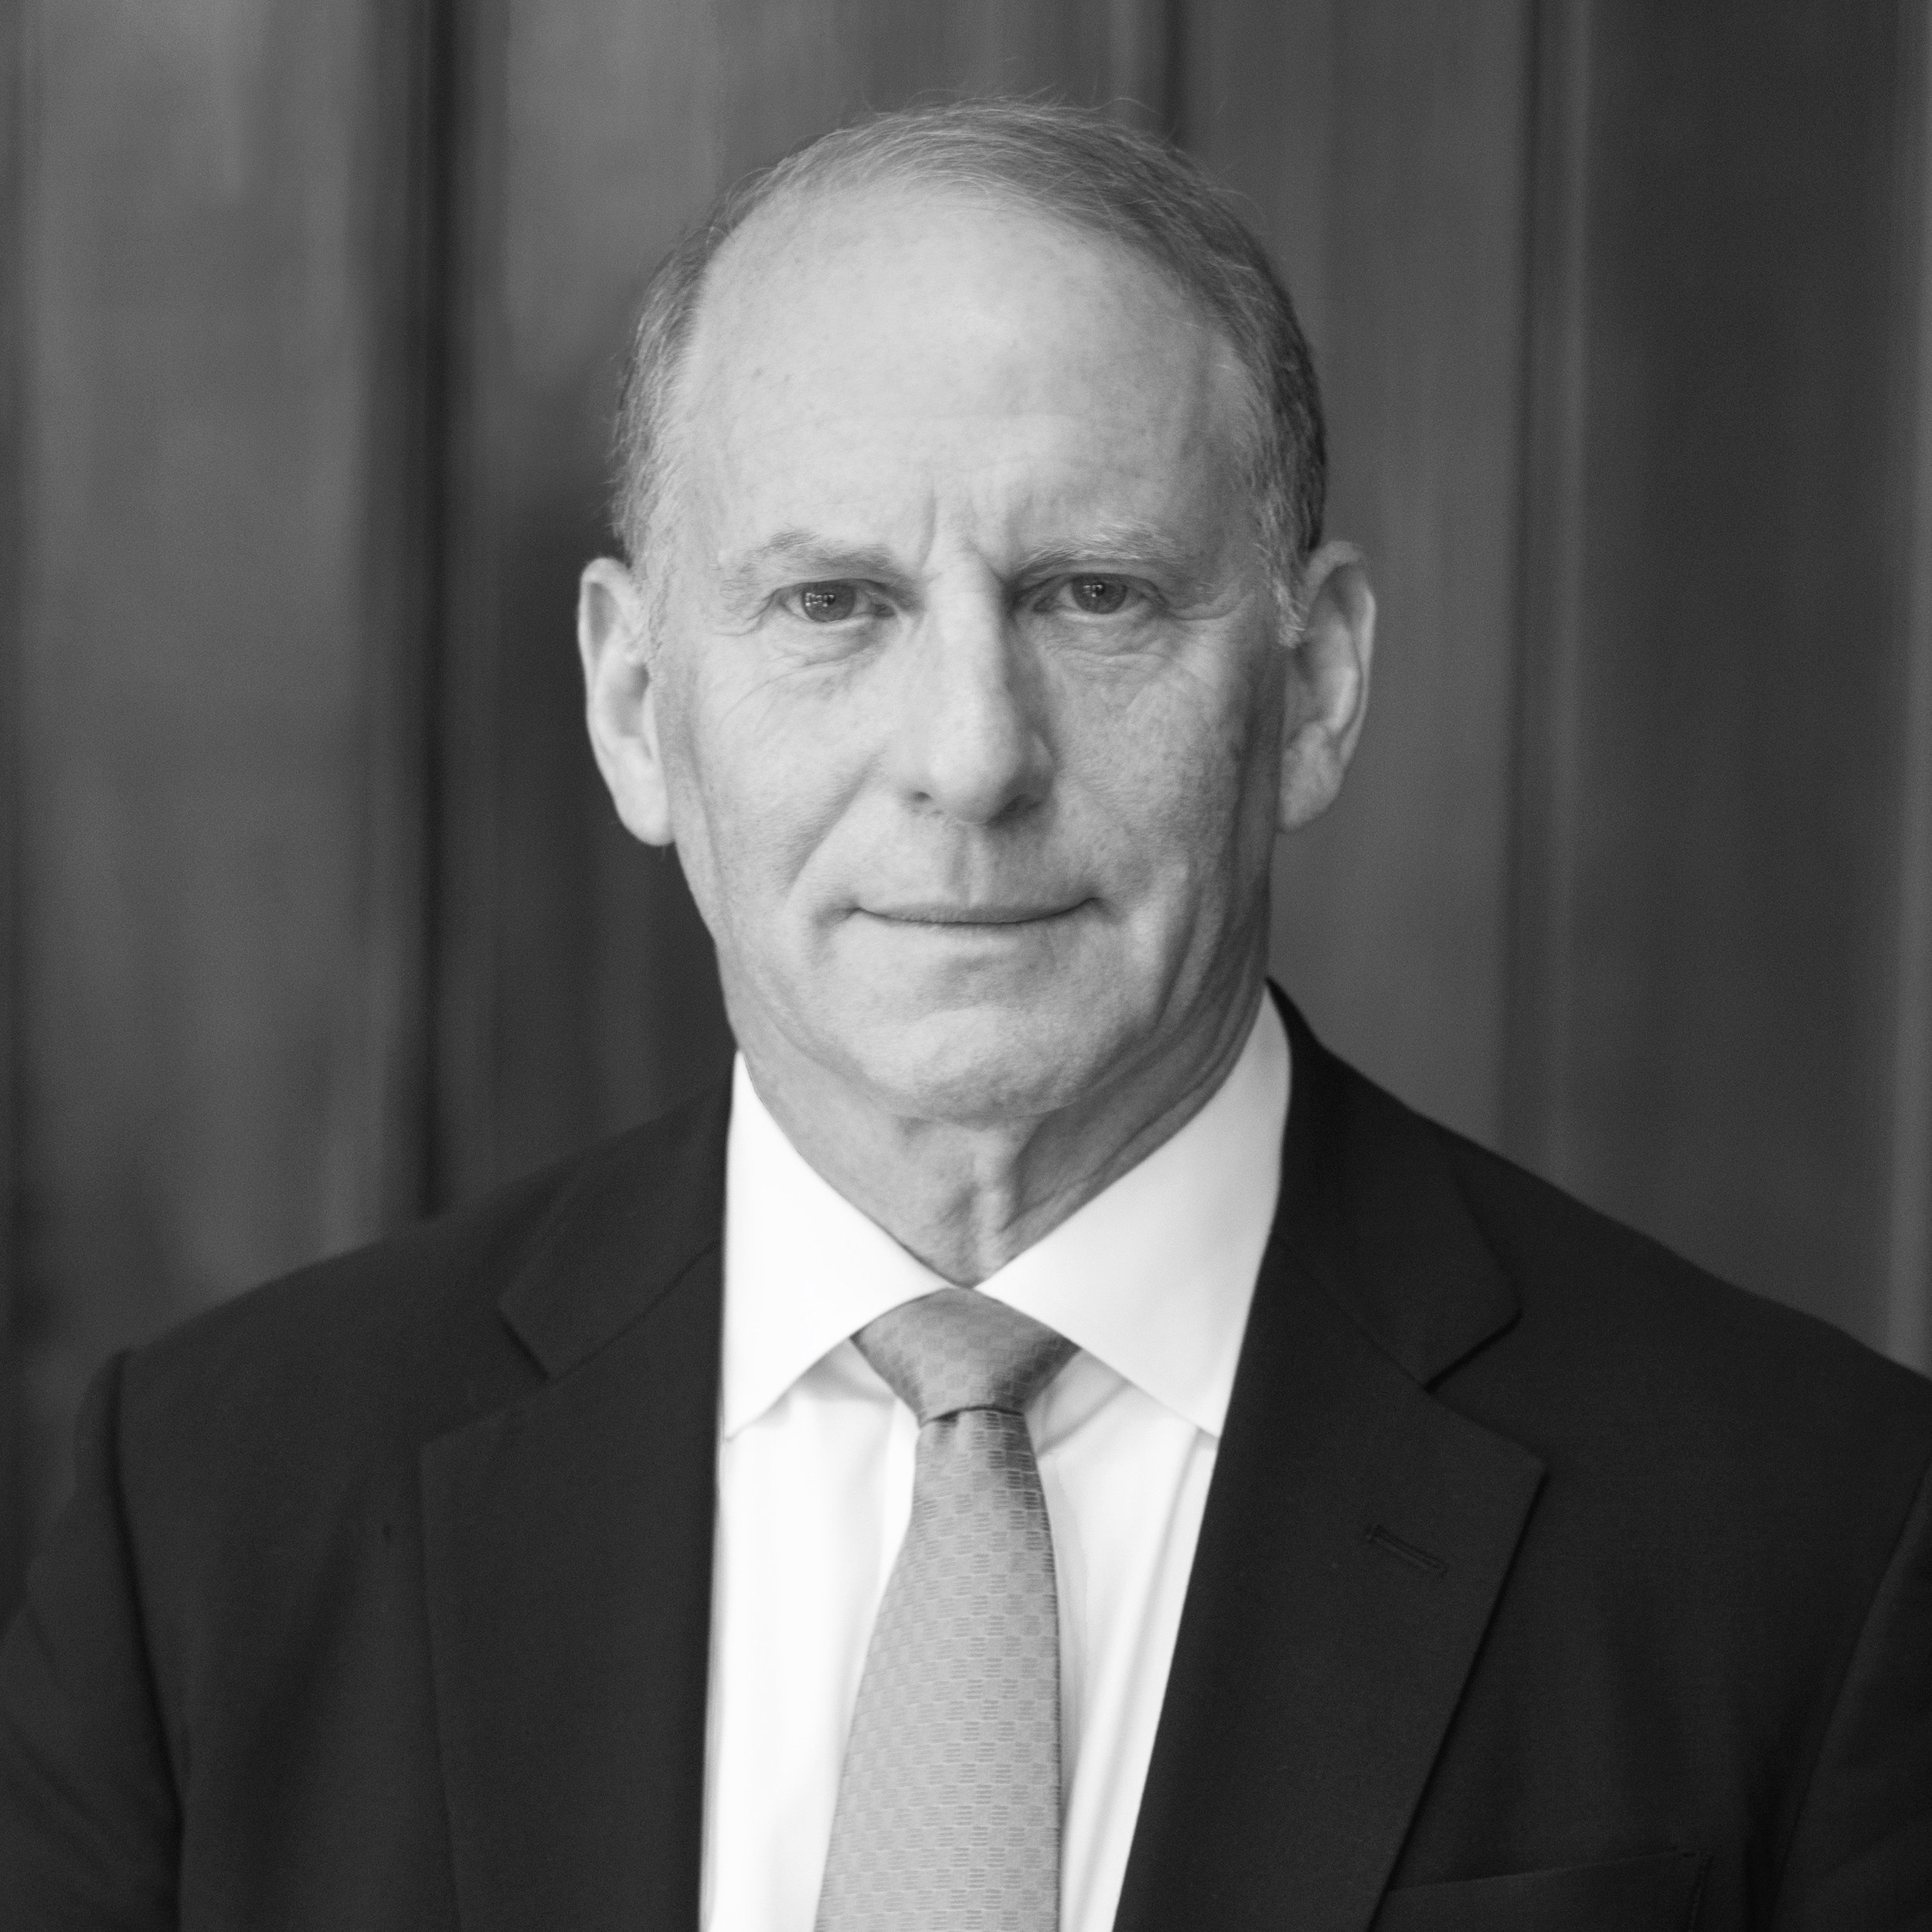 RICHARD HAASS  President, Council on Foreign Relations